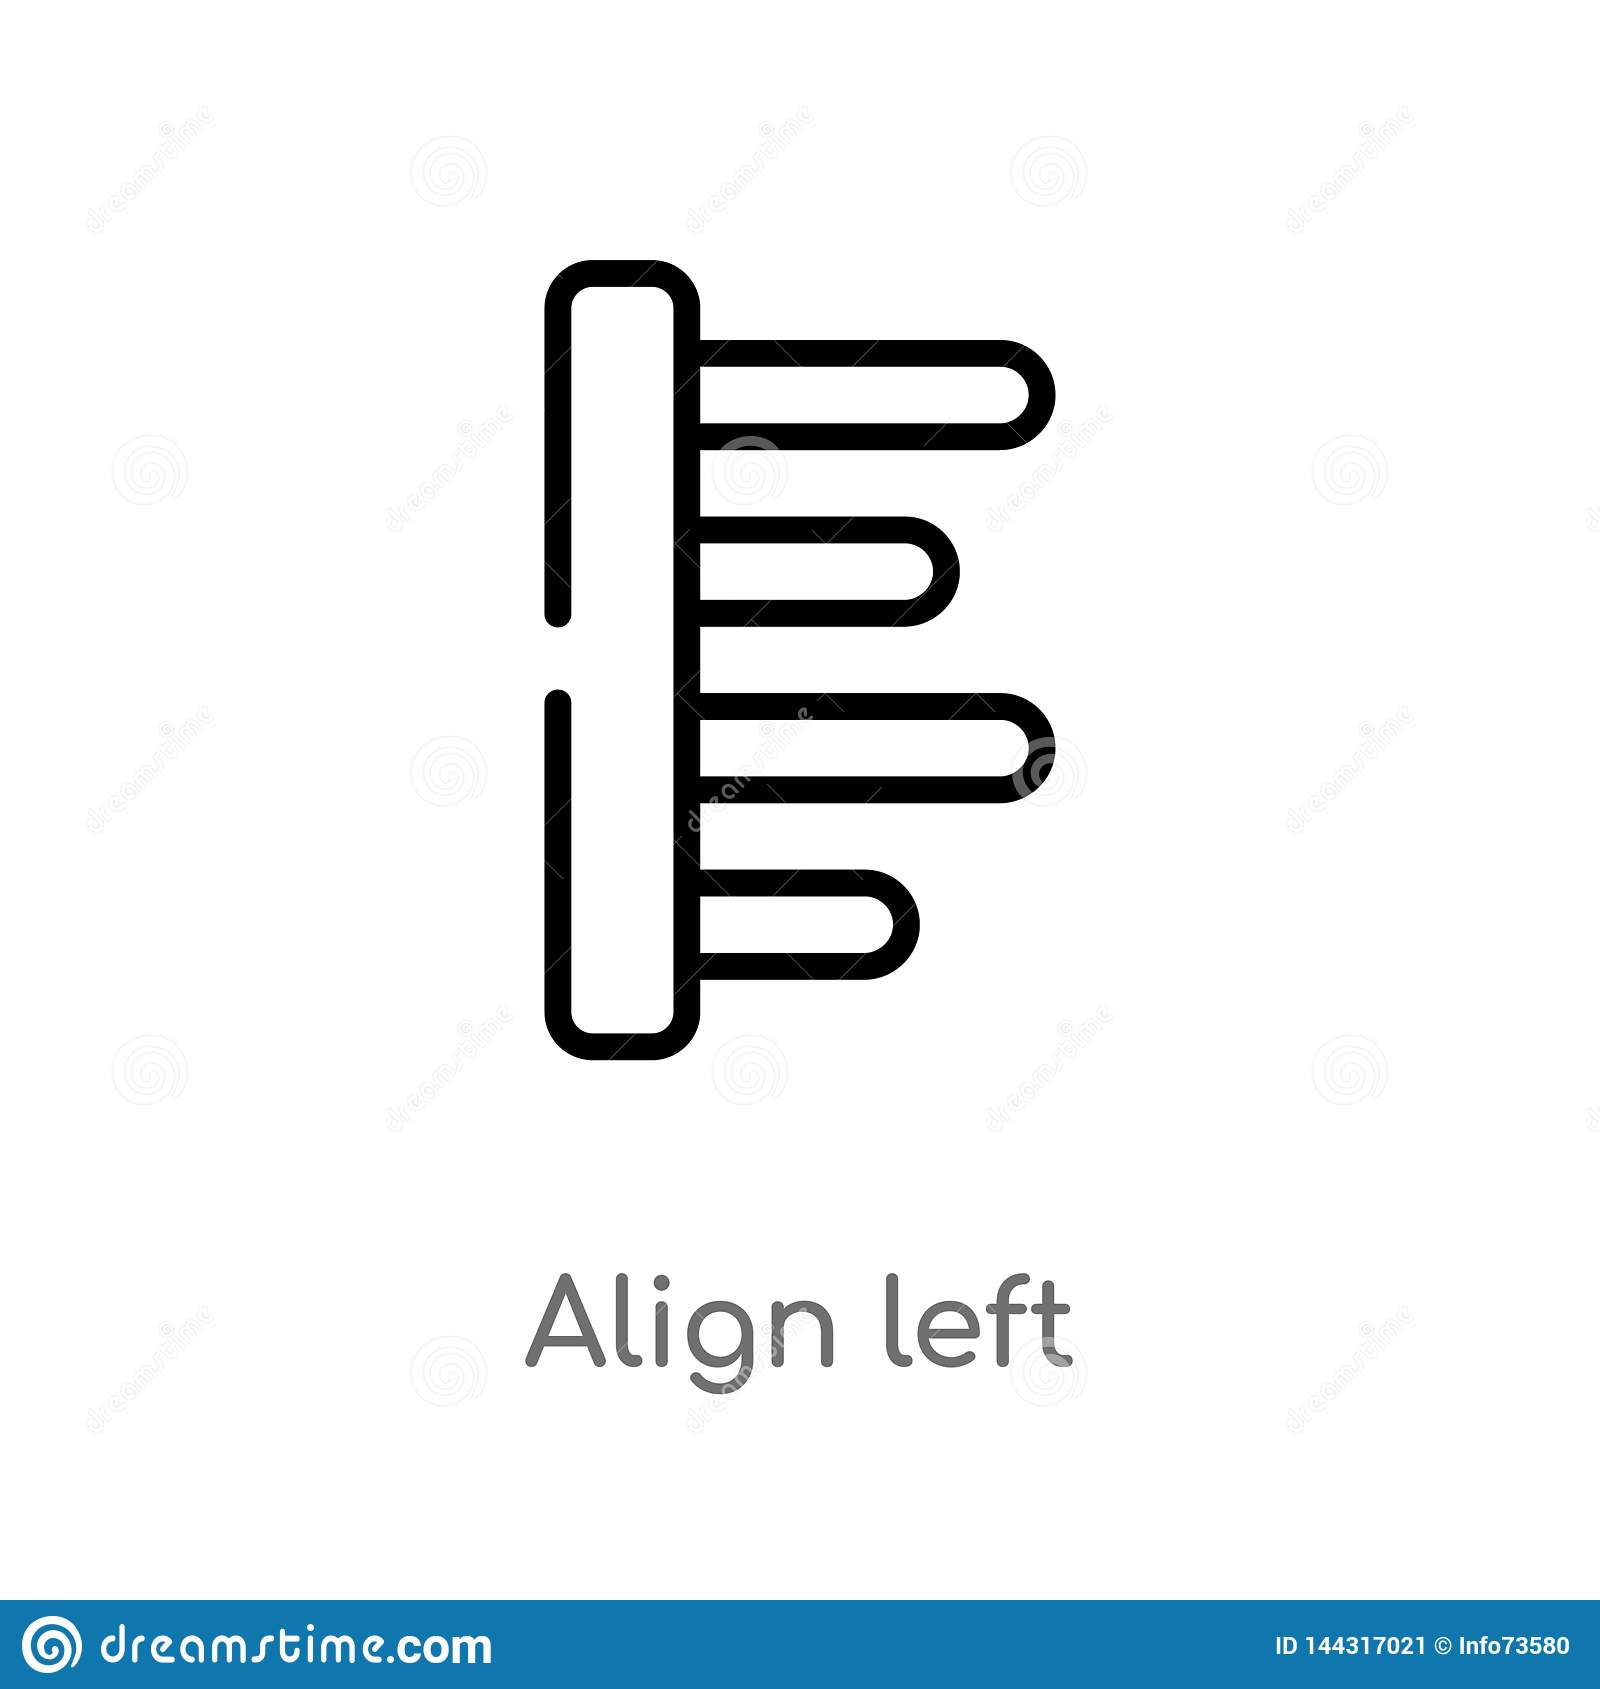 outline align left vector icon. isolated black simple line element illustration from signs concept. editable vector stroke align